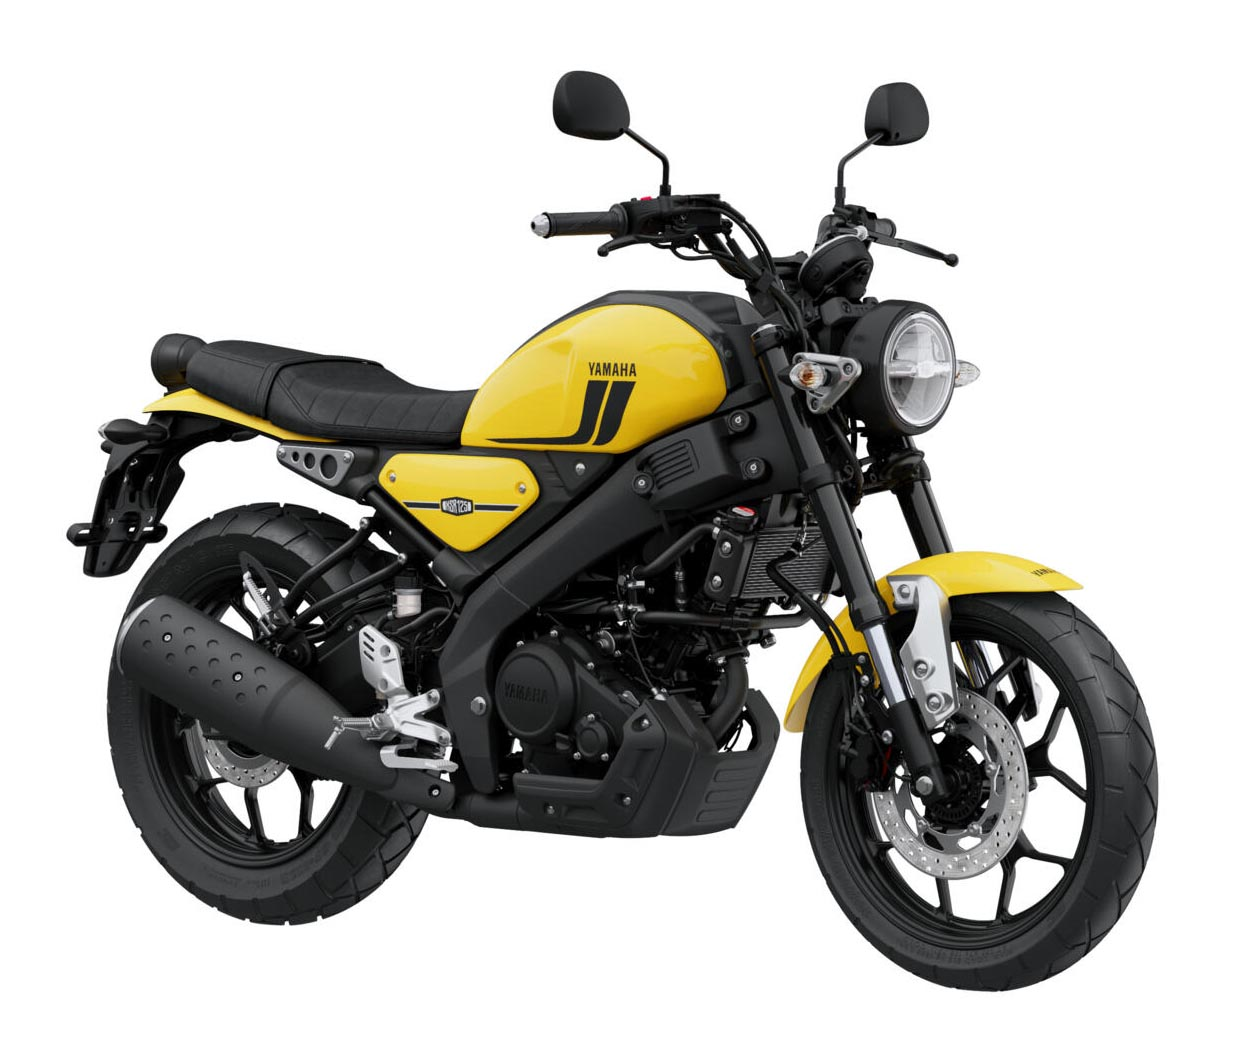 Yamaha XSR 125 technical specifications